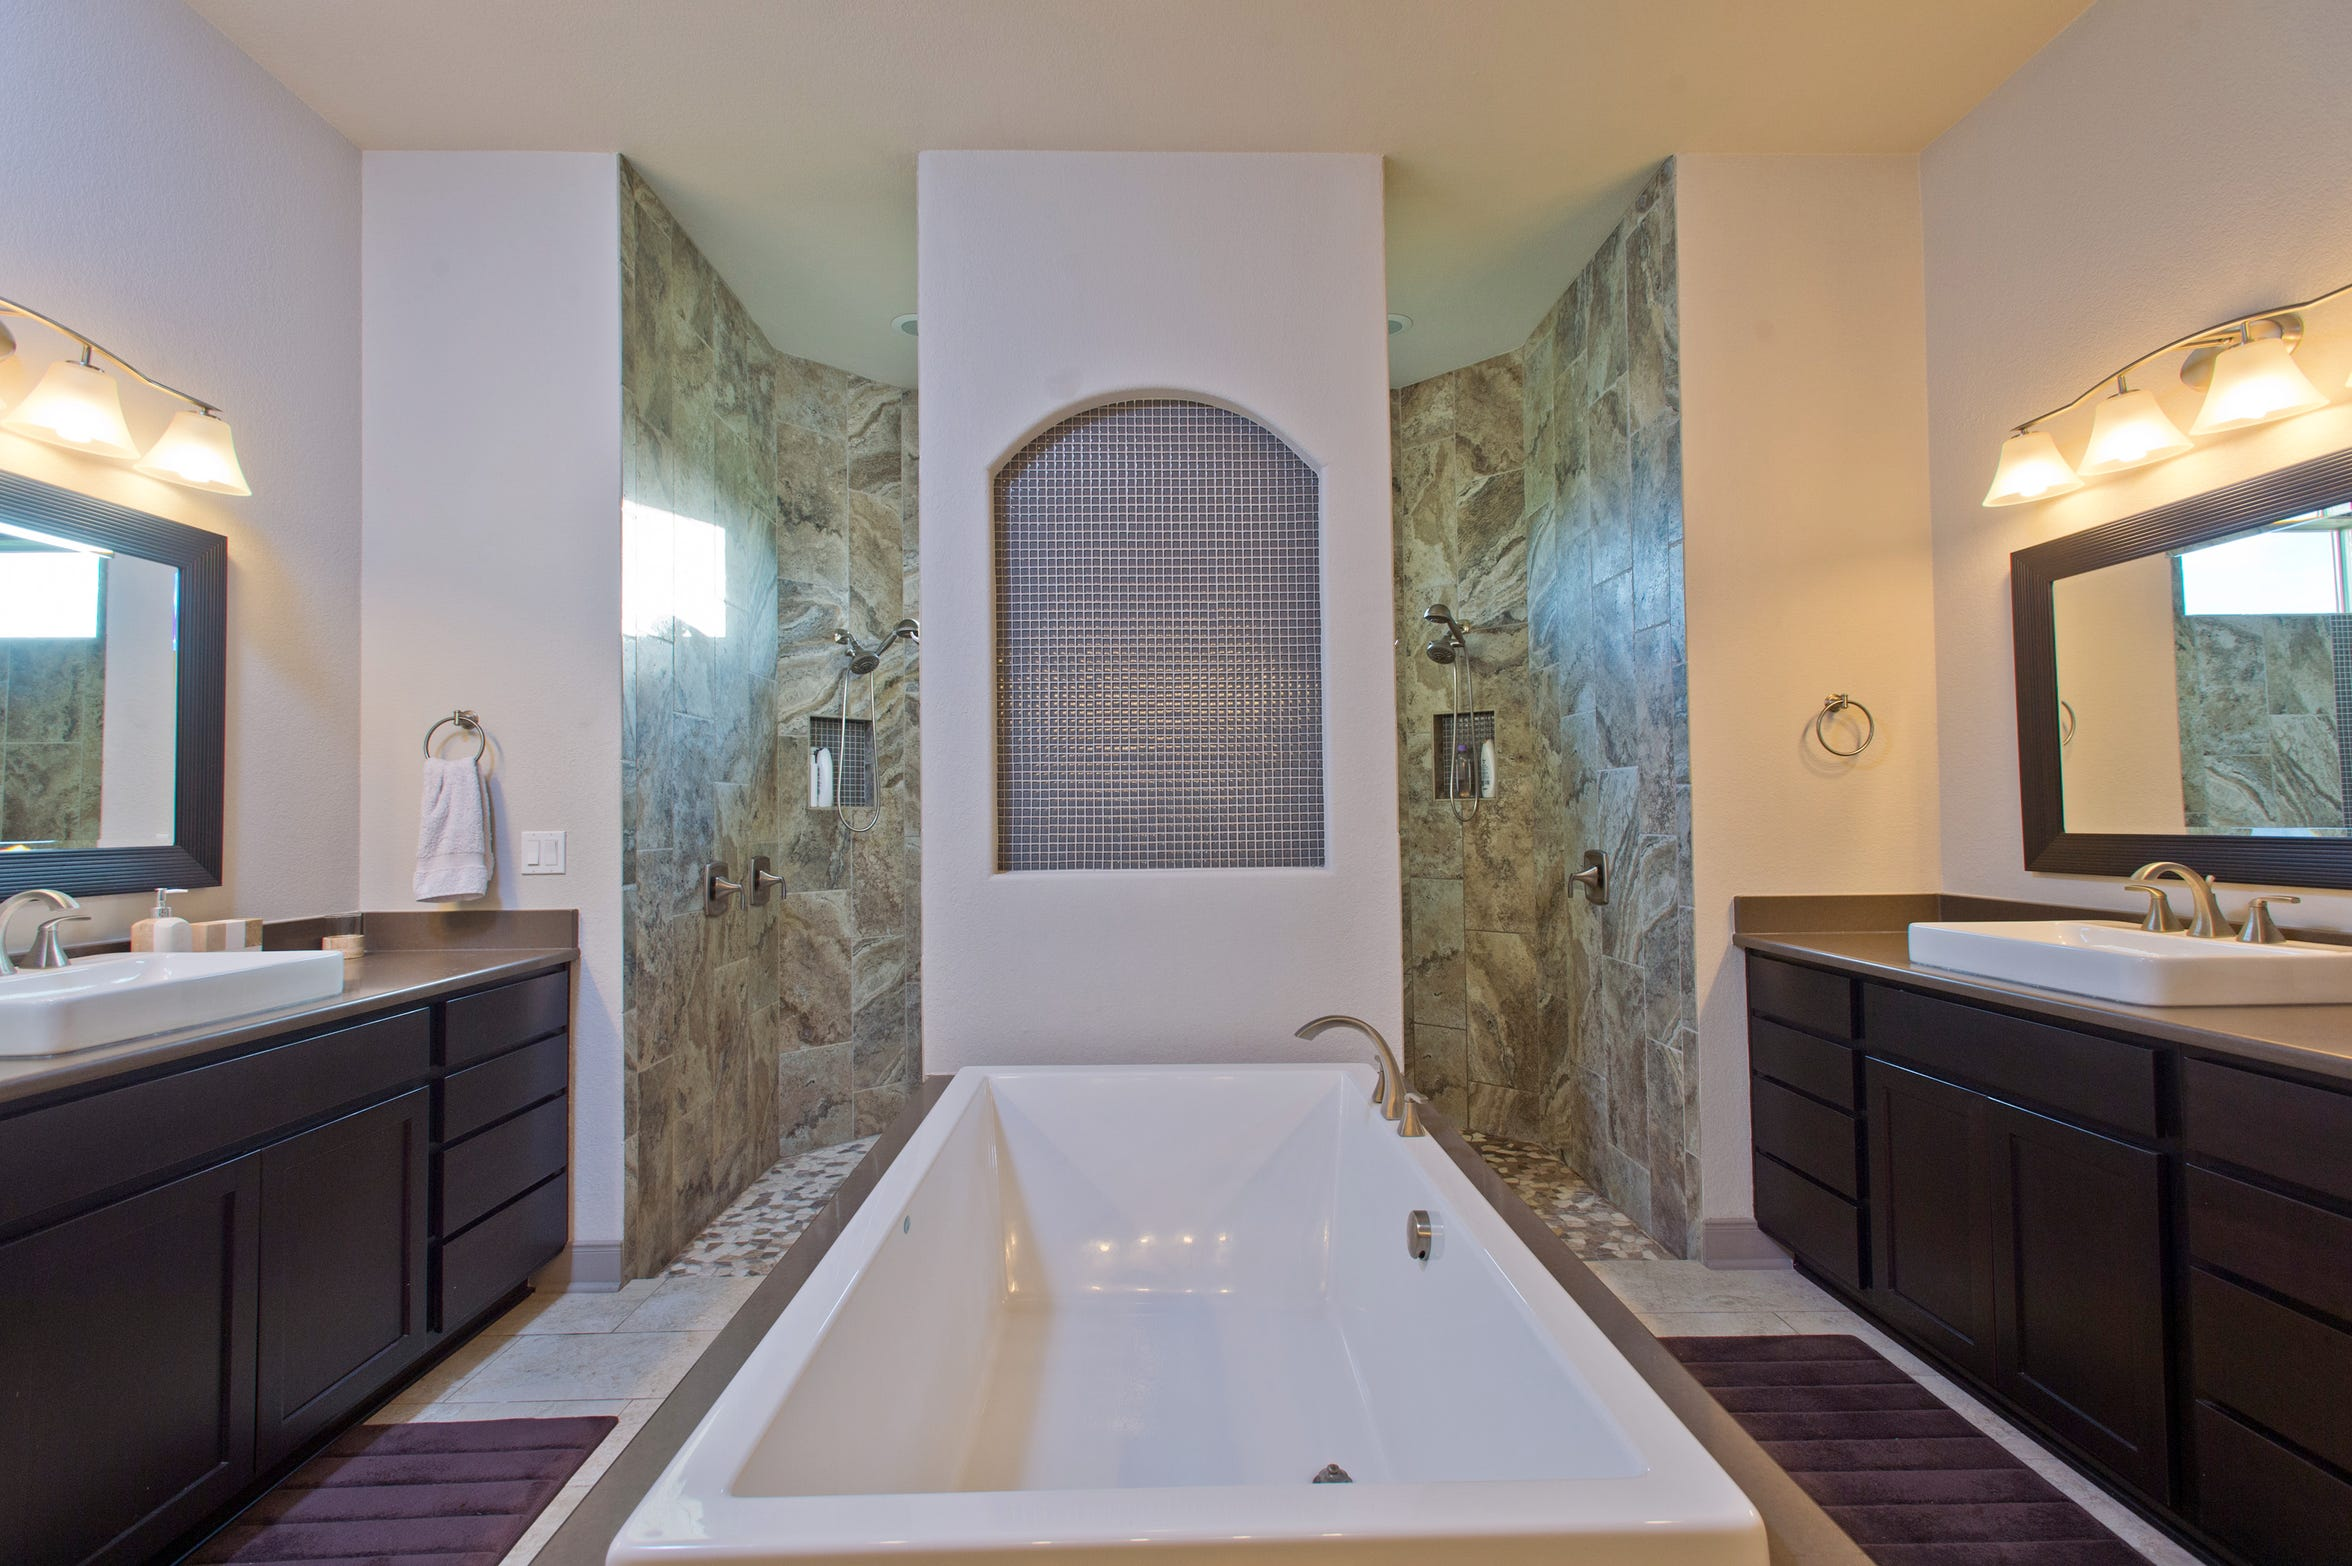 The luxurious master bath has walk-in shower, soaking tub, three vanity areas, and an oversized walk-in closet with built-ins